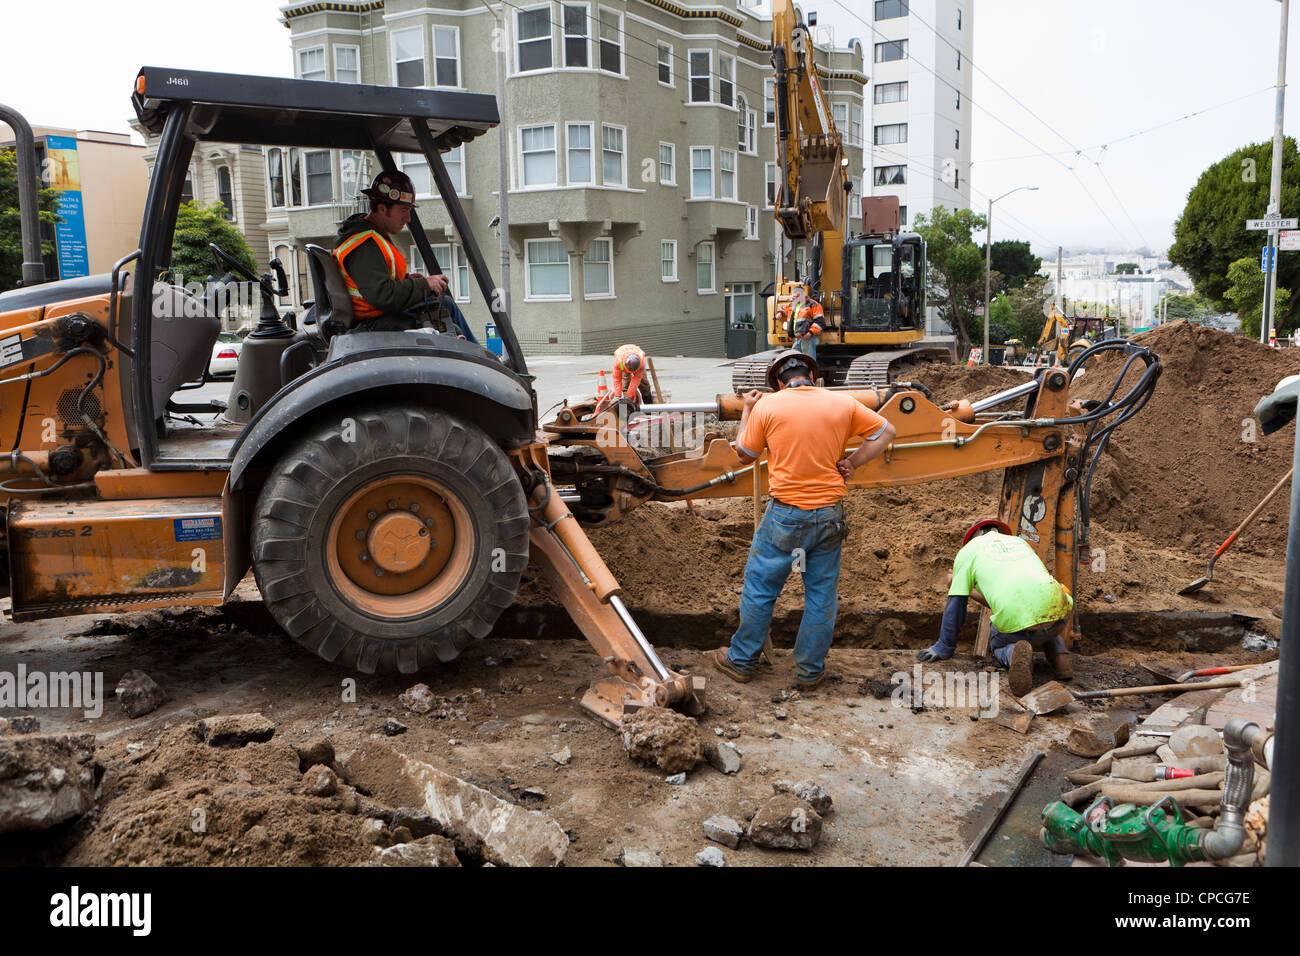 Municipal construction workers and backhoe digging trench - Stock Image